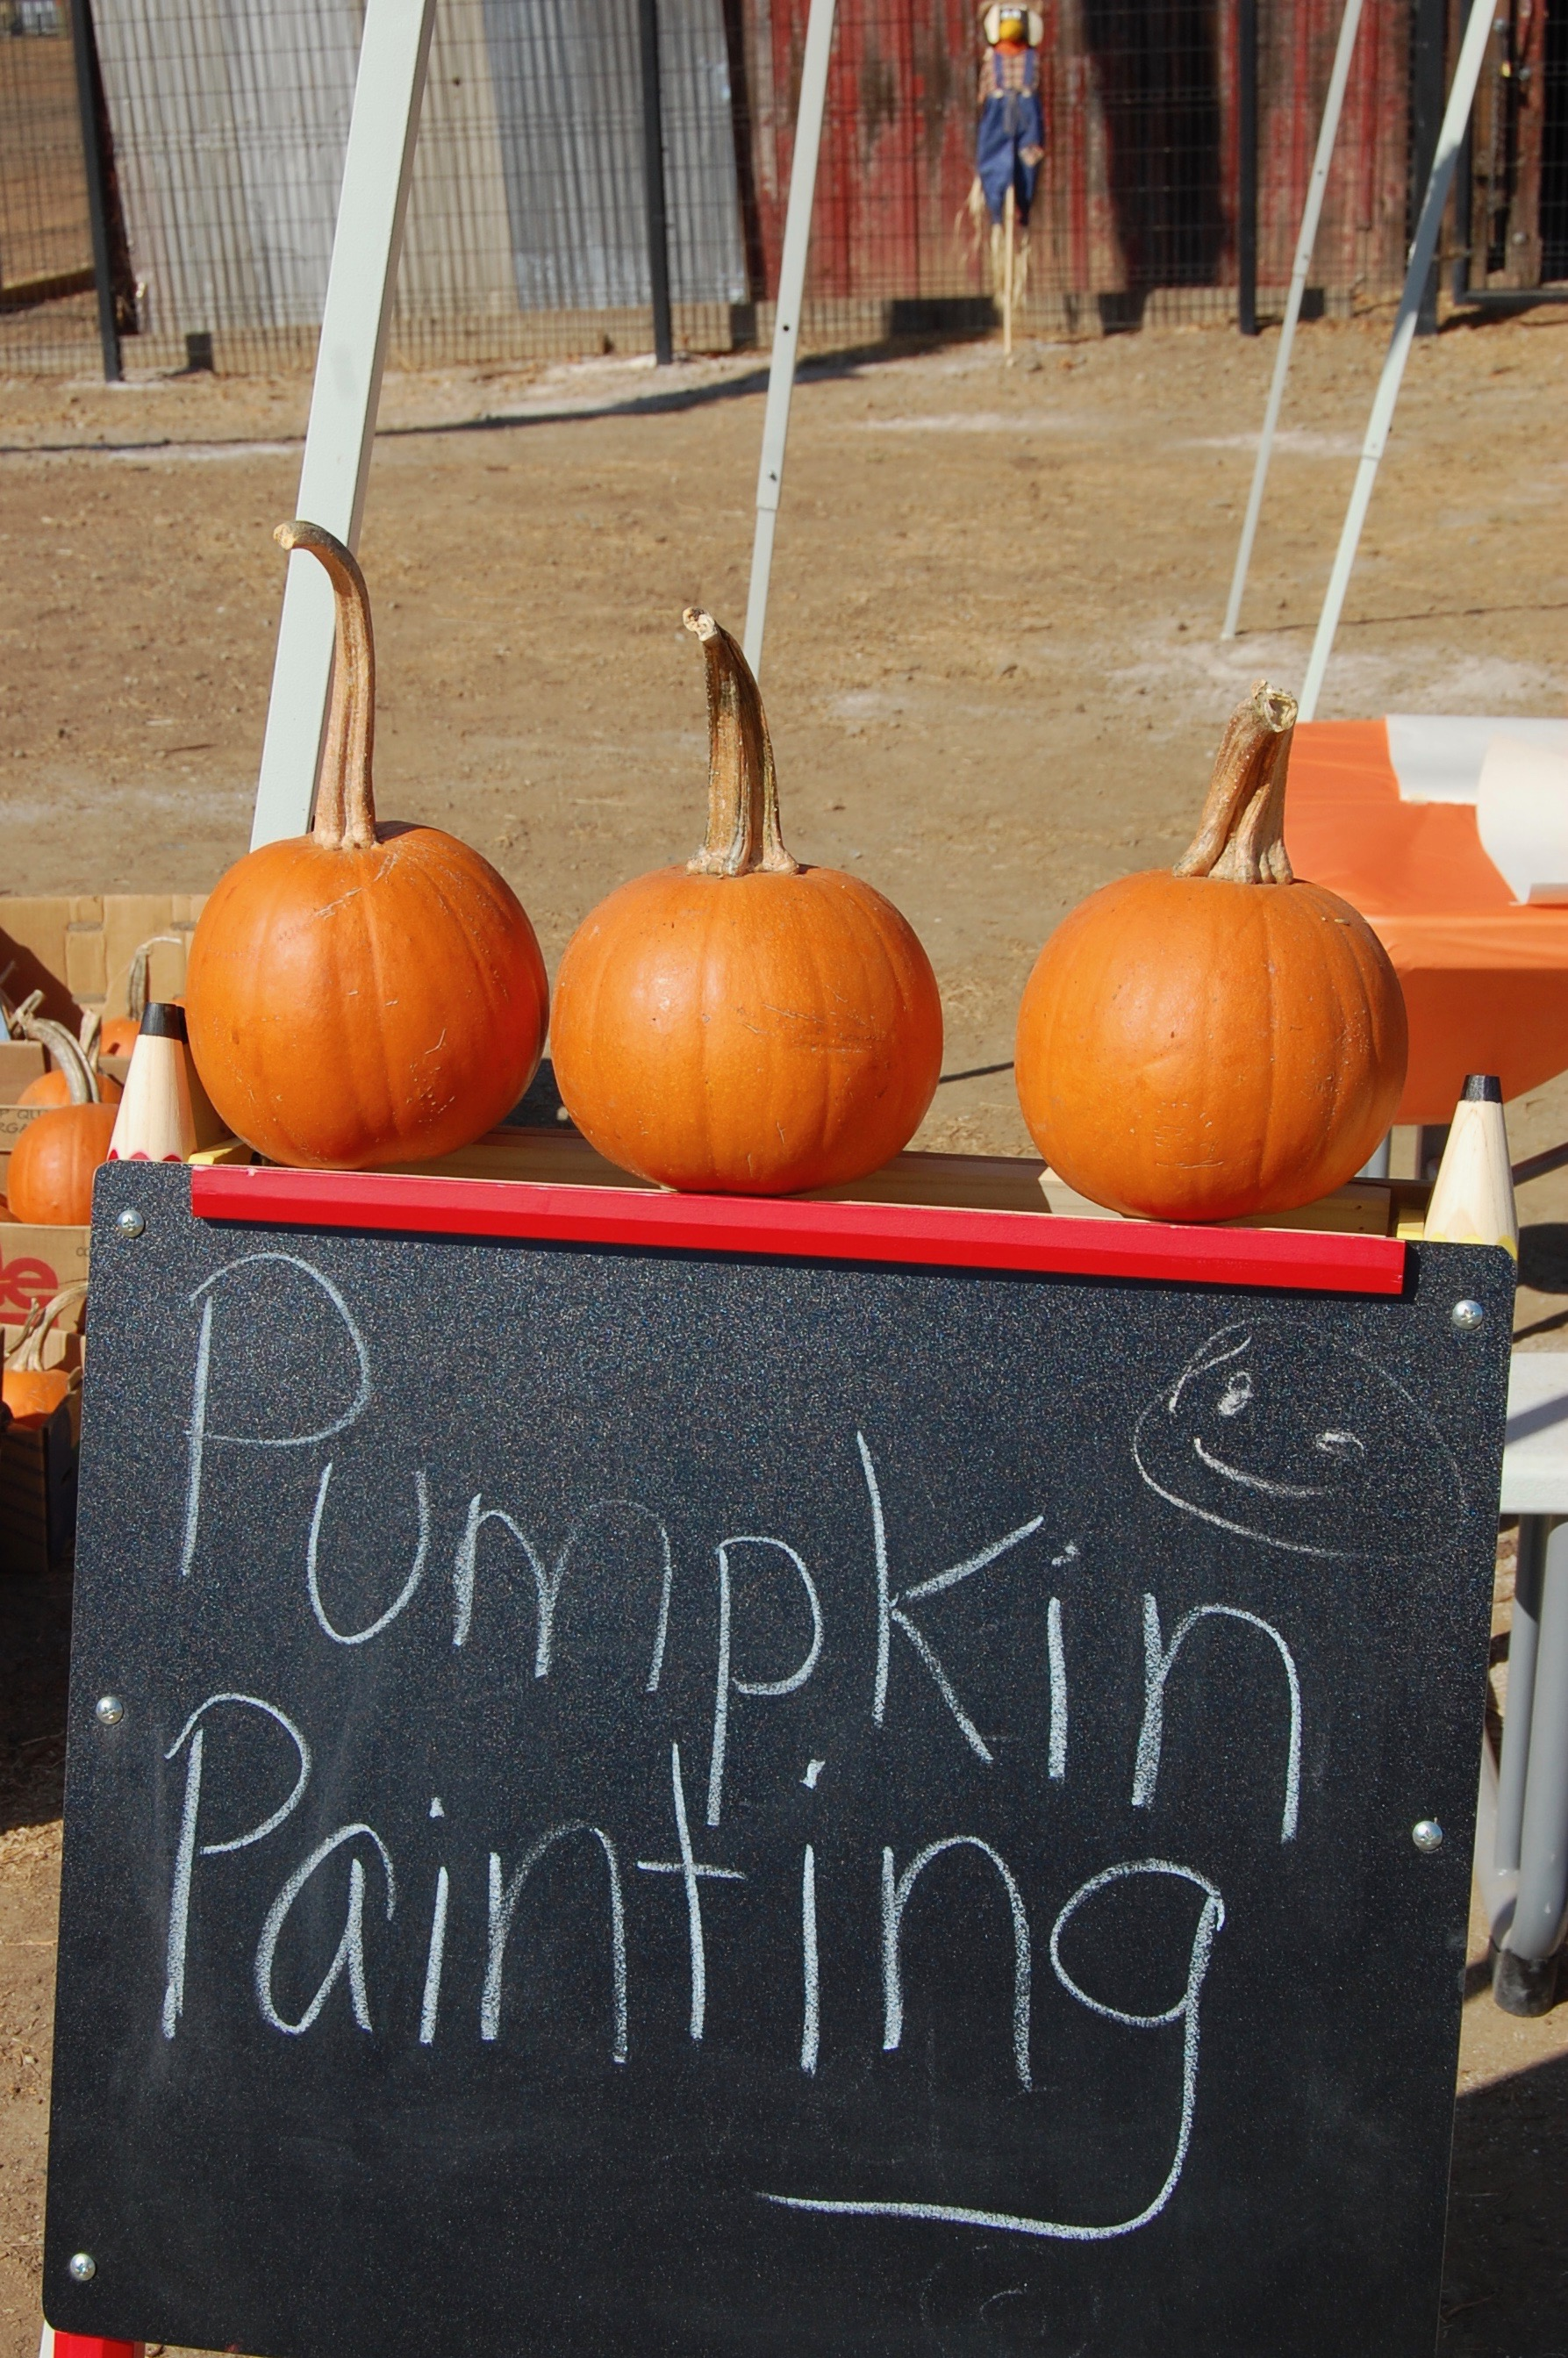 Pumpkin painting was another popular stop for all of the kids.